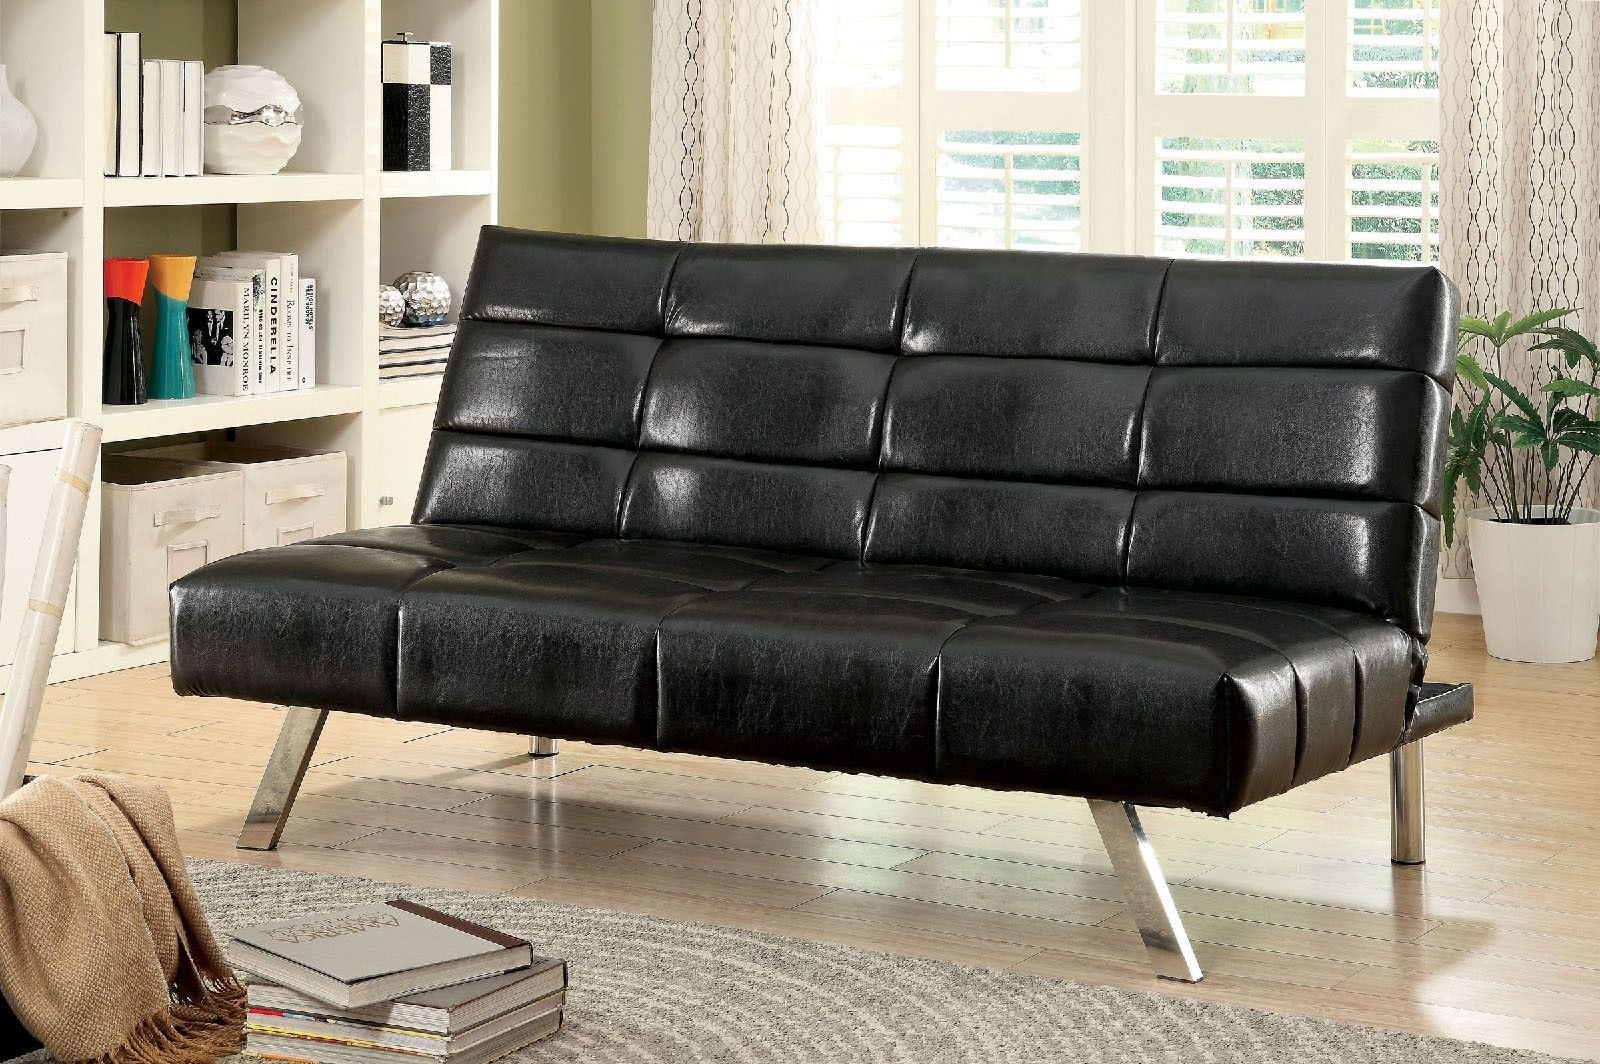 The New Furniture Of America Peck Sofa Futon Provides A Comfortable Seat And Beautiful Style Learn More Save Right Here At Las Vegas Online